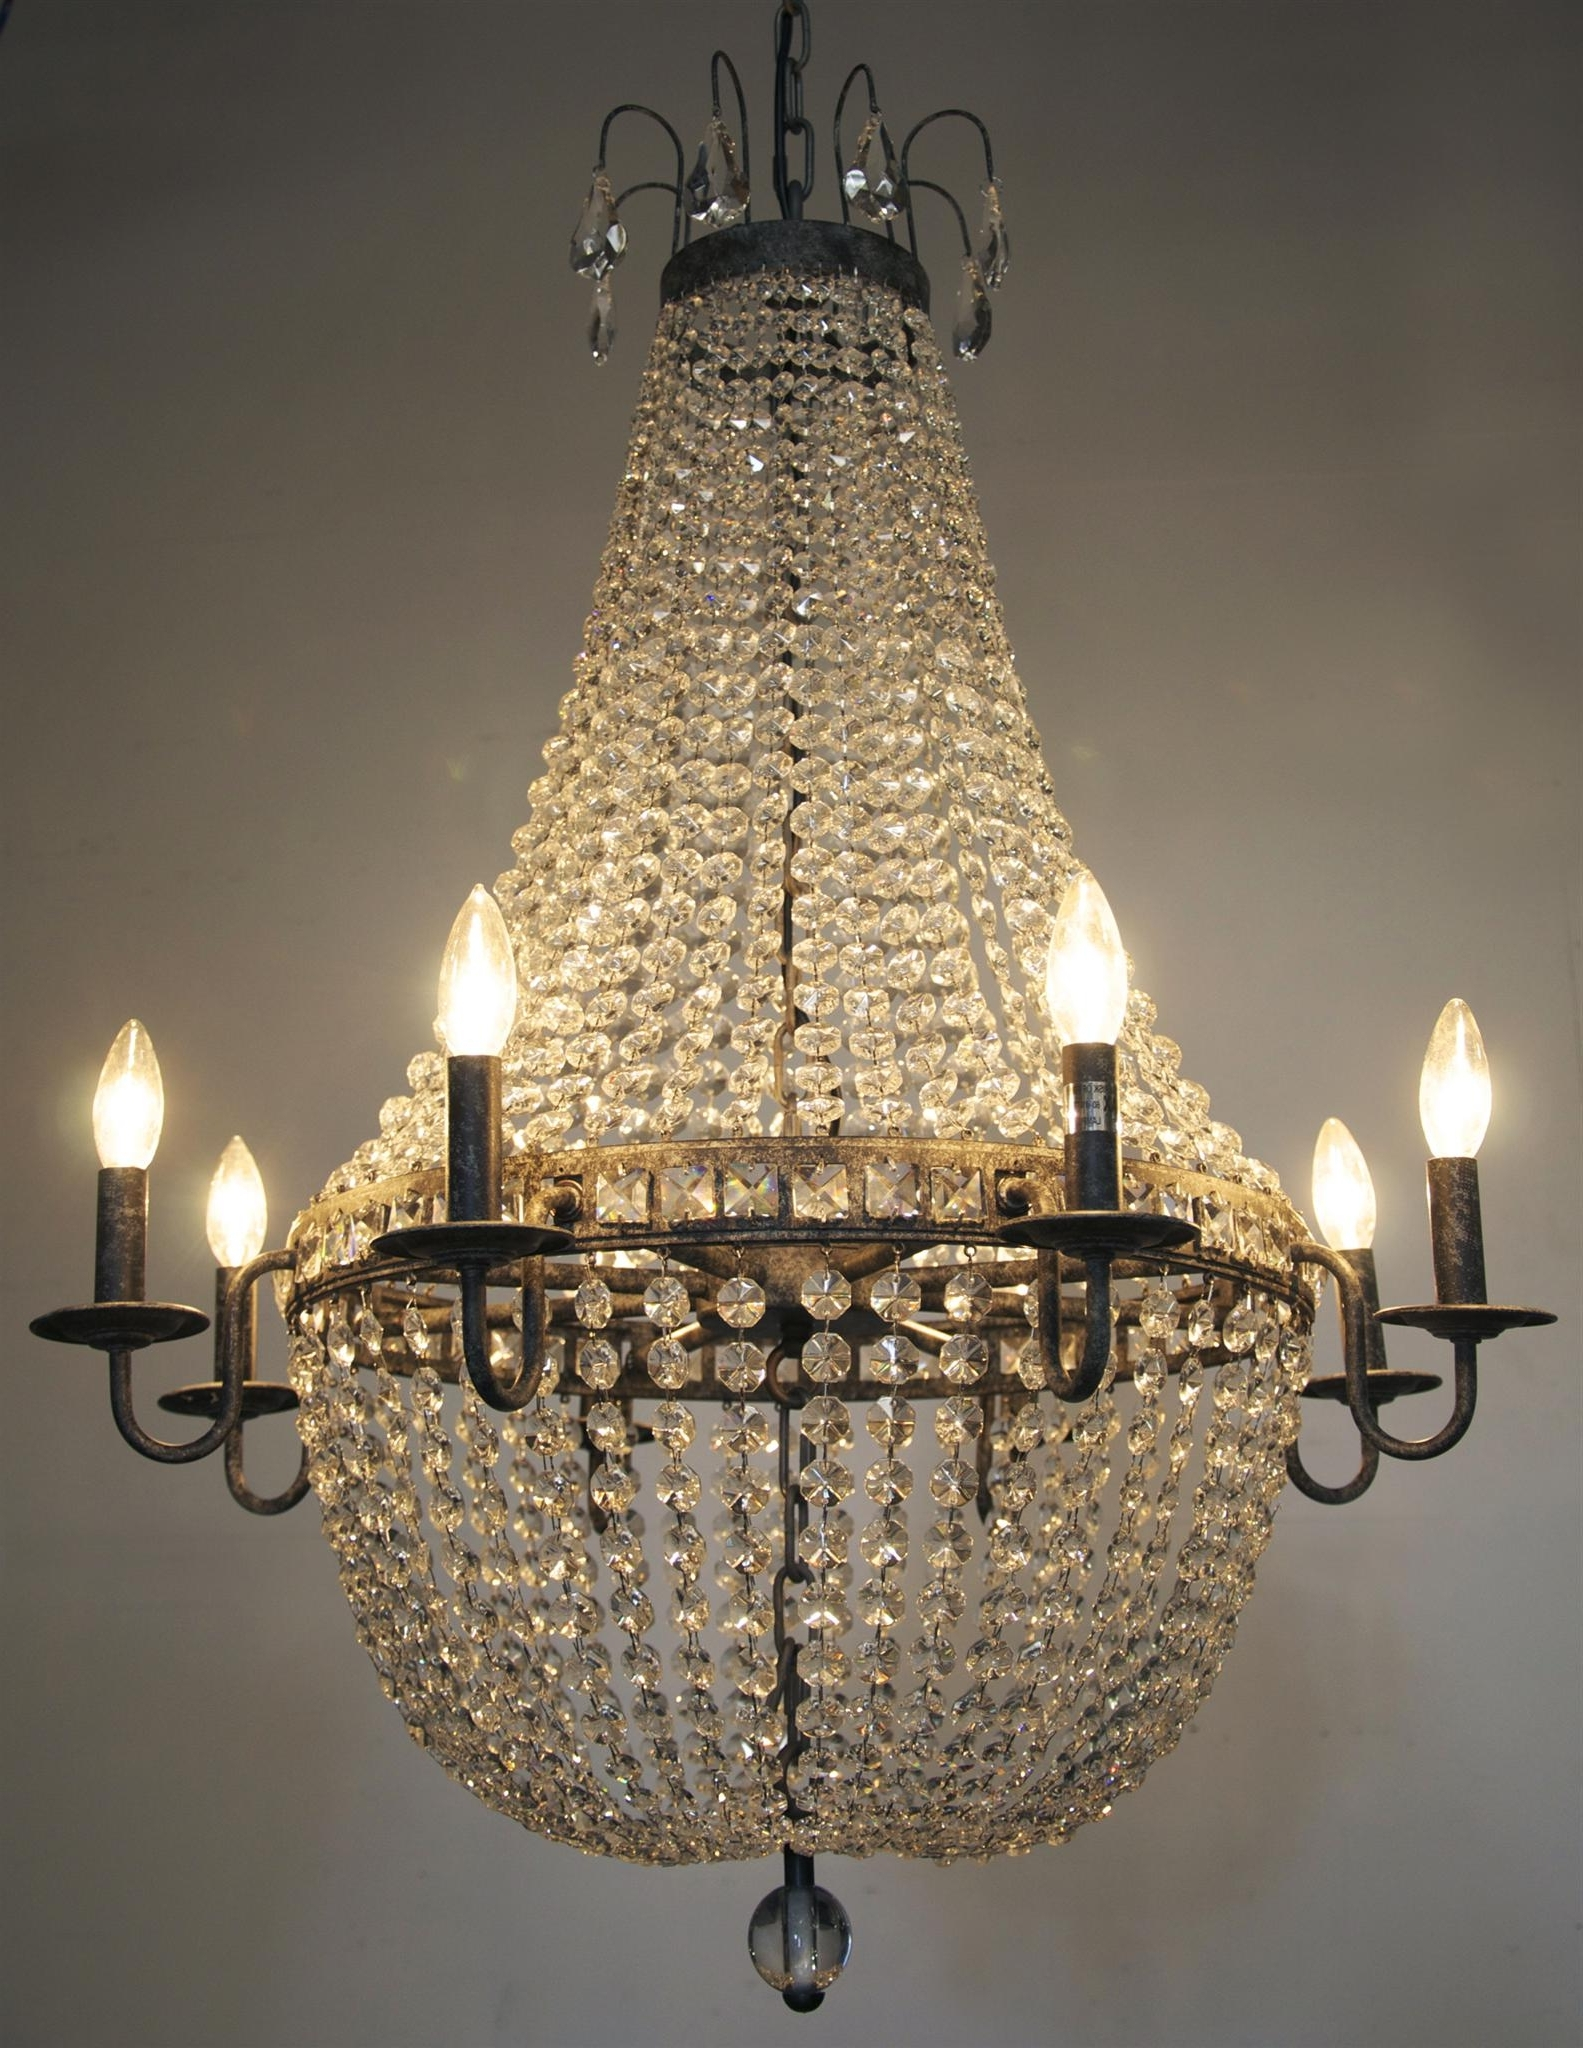 2017 Light : Stunning Antique Crystal Chandelier With Additional Of Intended For Antique Style Chandeliers (View 1 of 15)